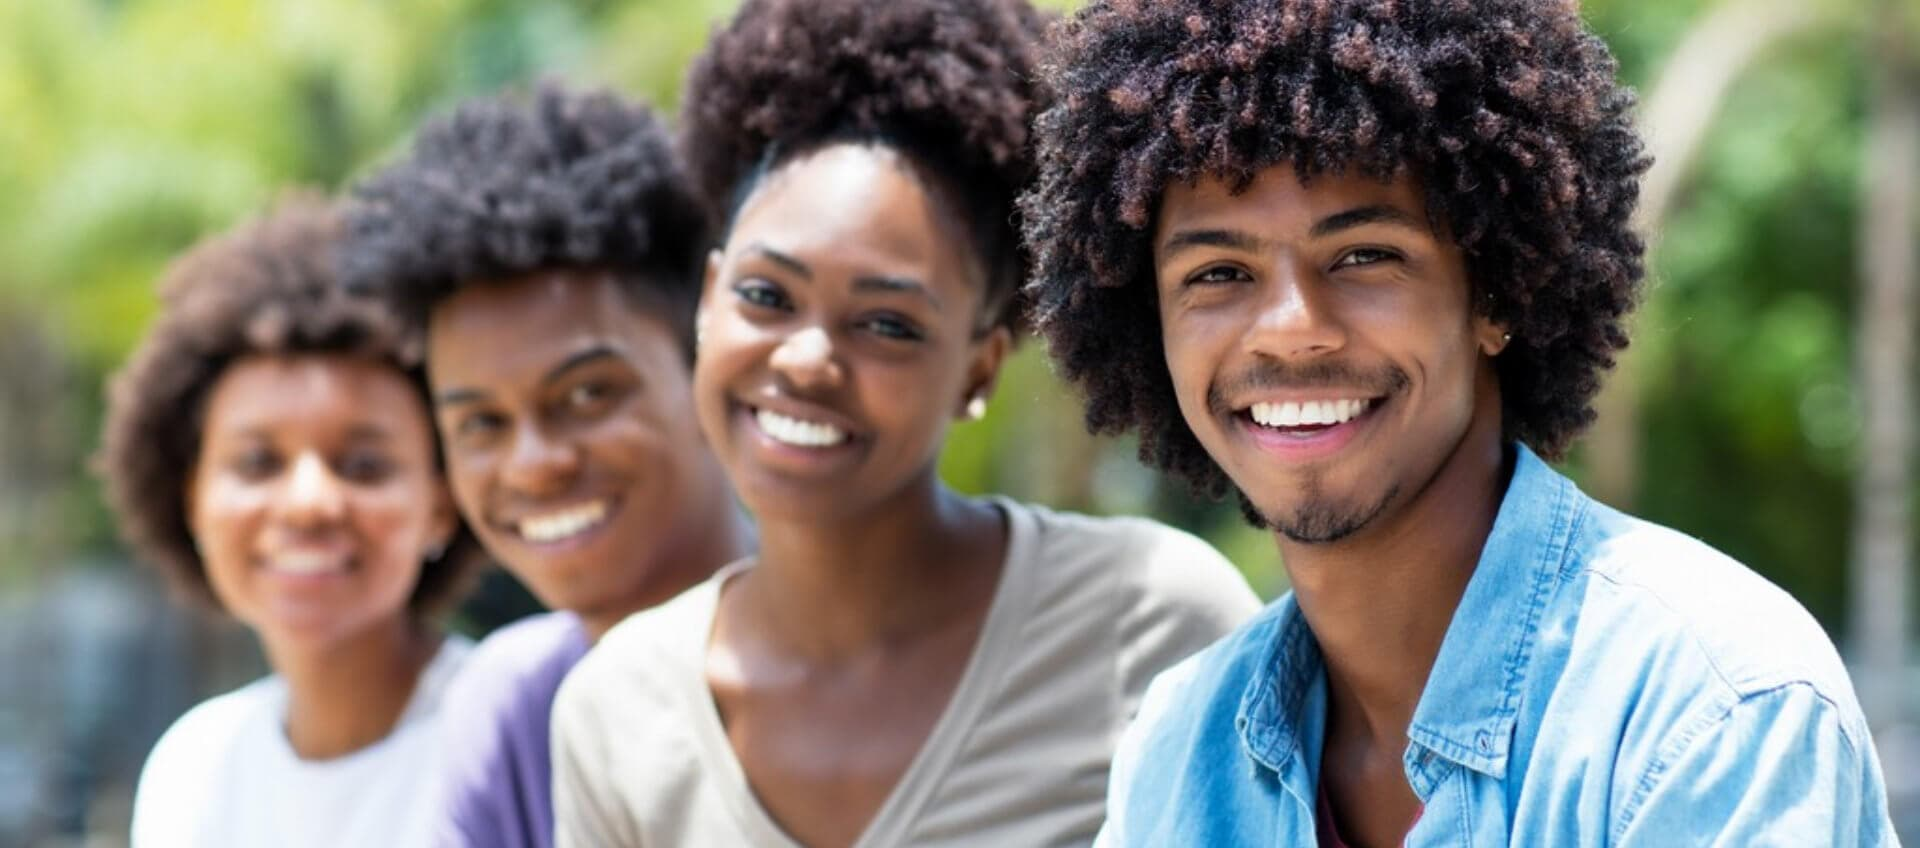 group of adult volunteers smiling concept